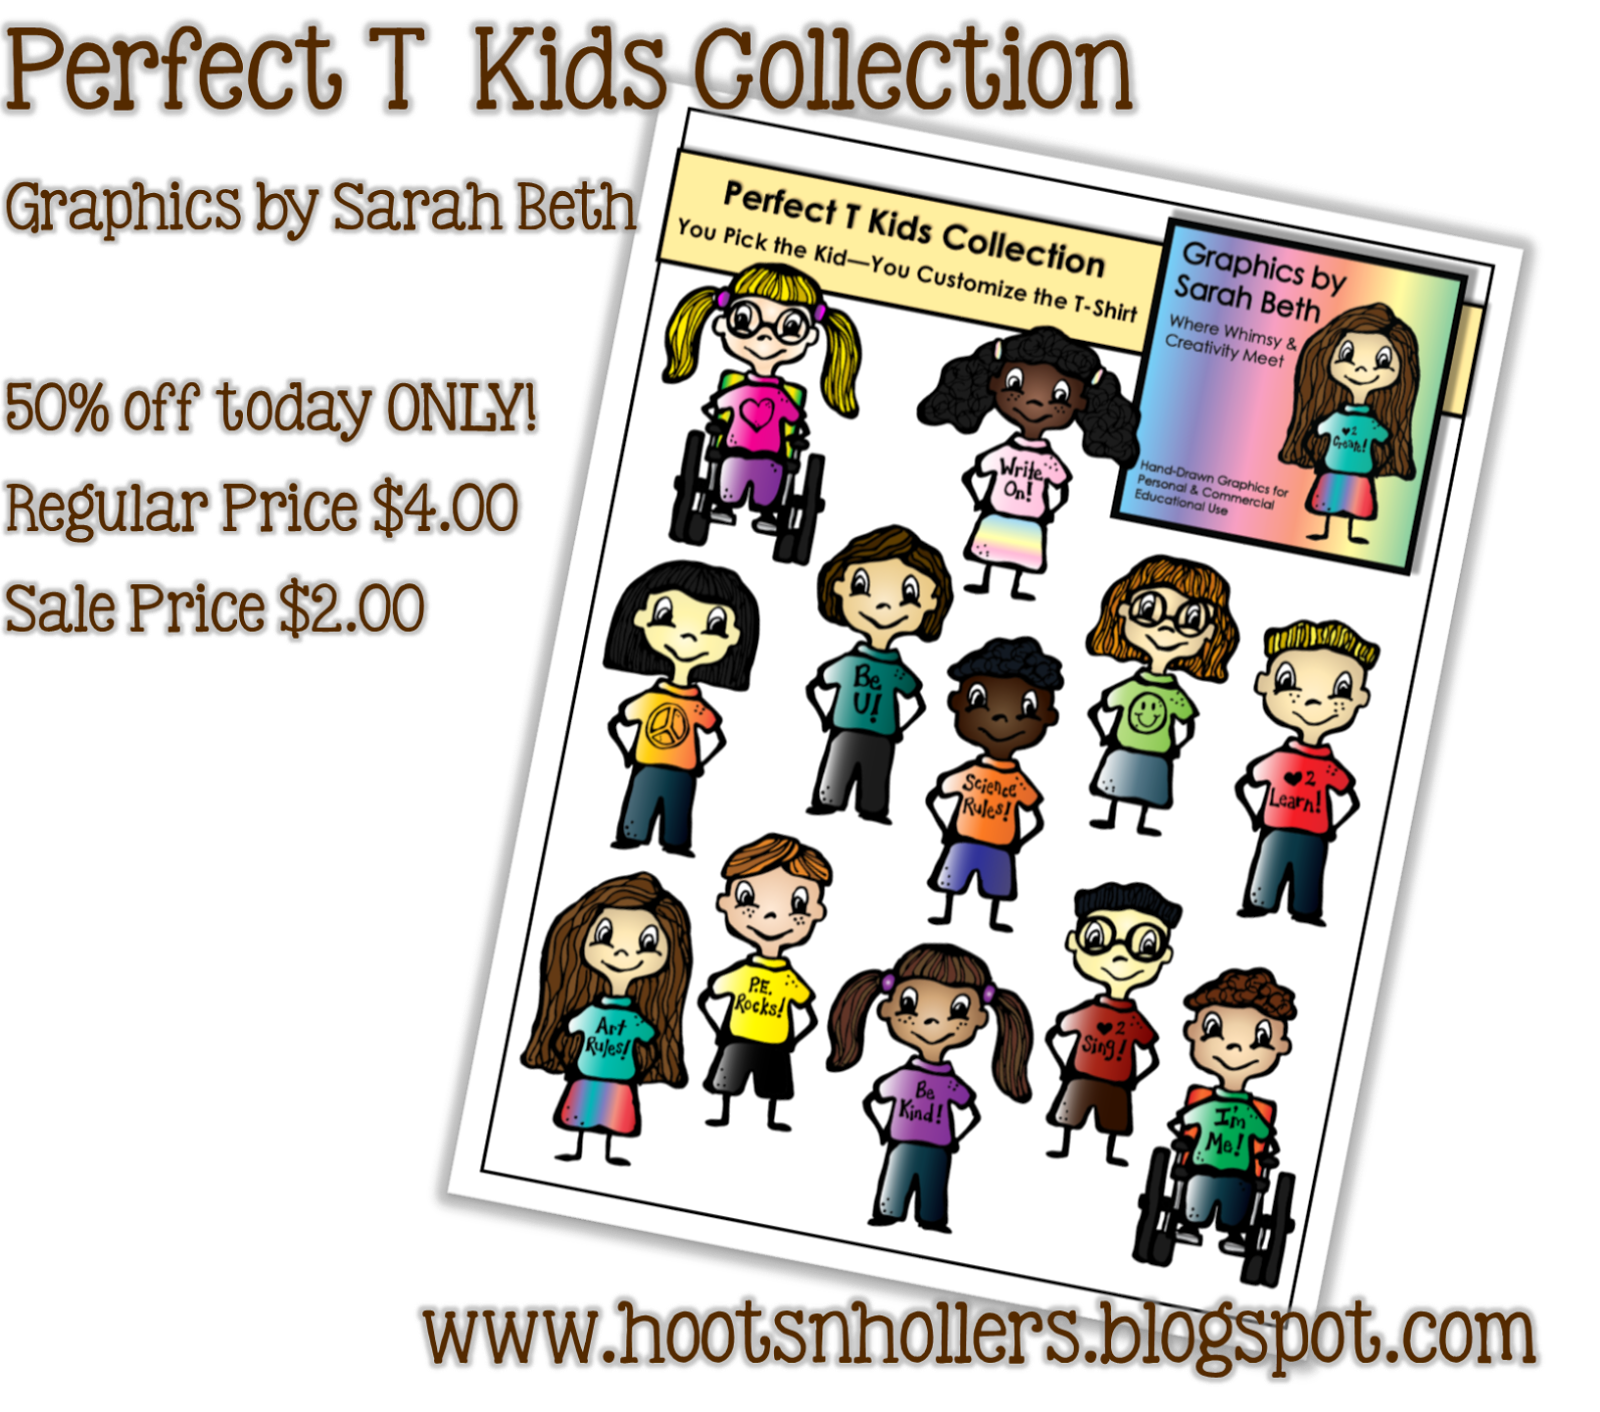 http://www.teacherspayteachers.com/Product/Perfect-T-Kids-Collection-Clipart-Kids-Graphics-727471